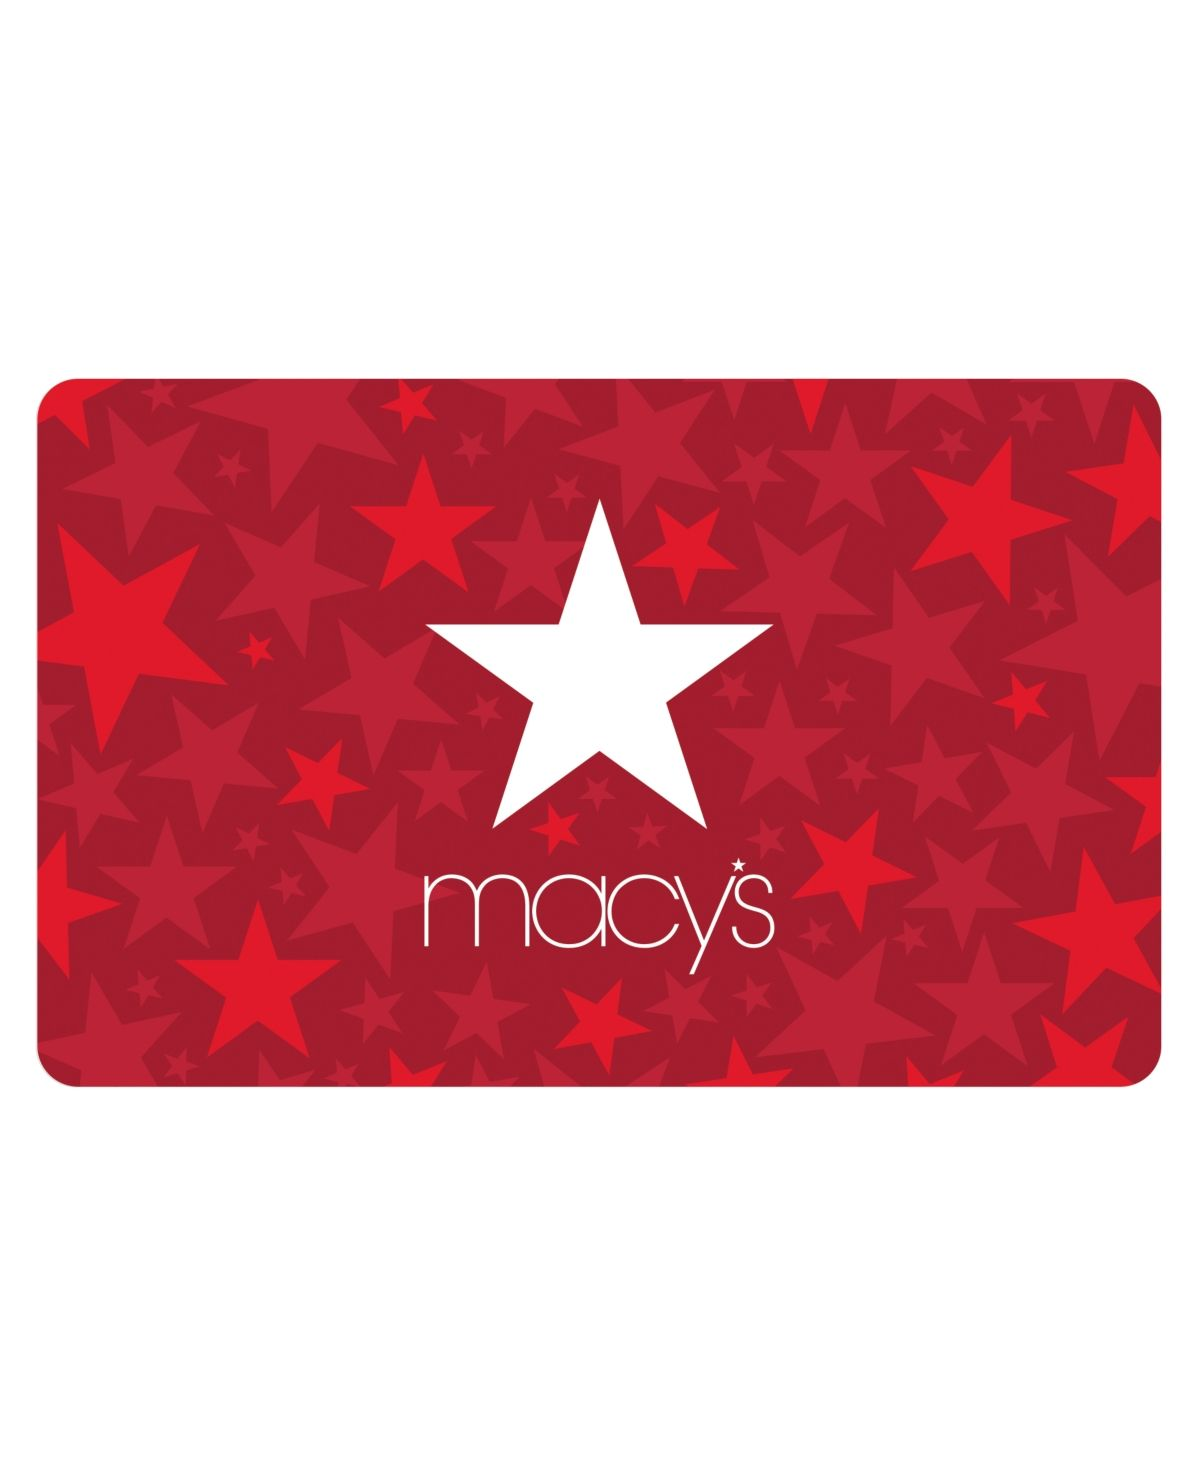 Macy Wedding Gifts: Macy's Star Gift Card With Greeting Card In 2020